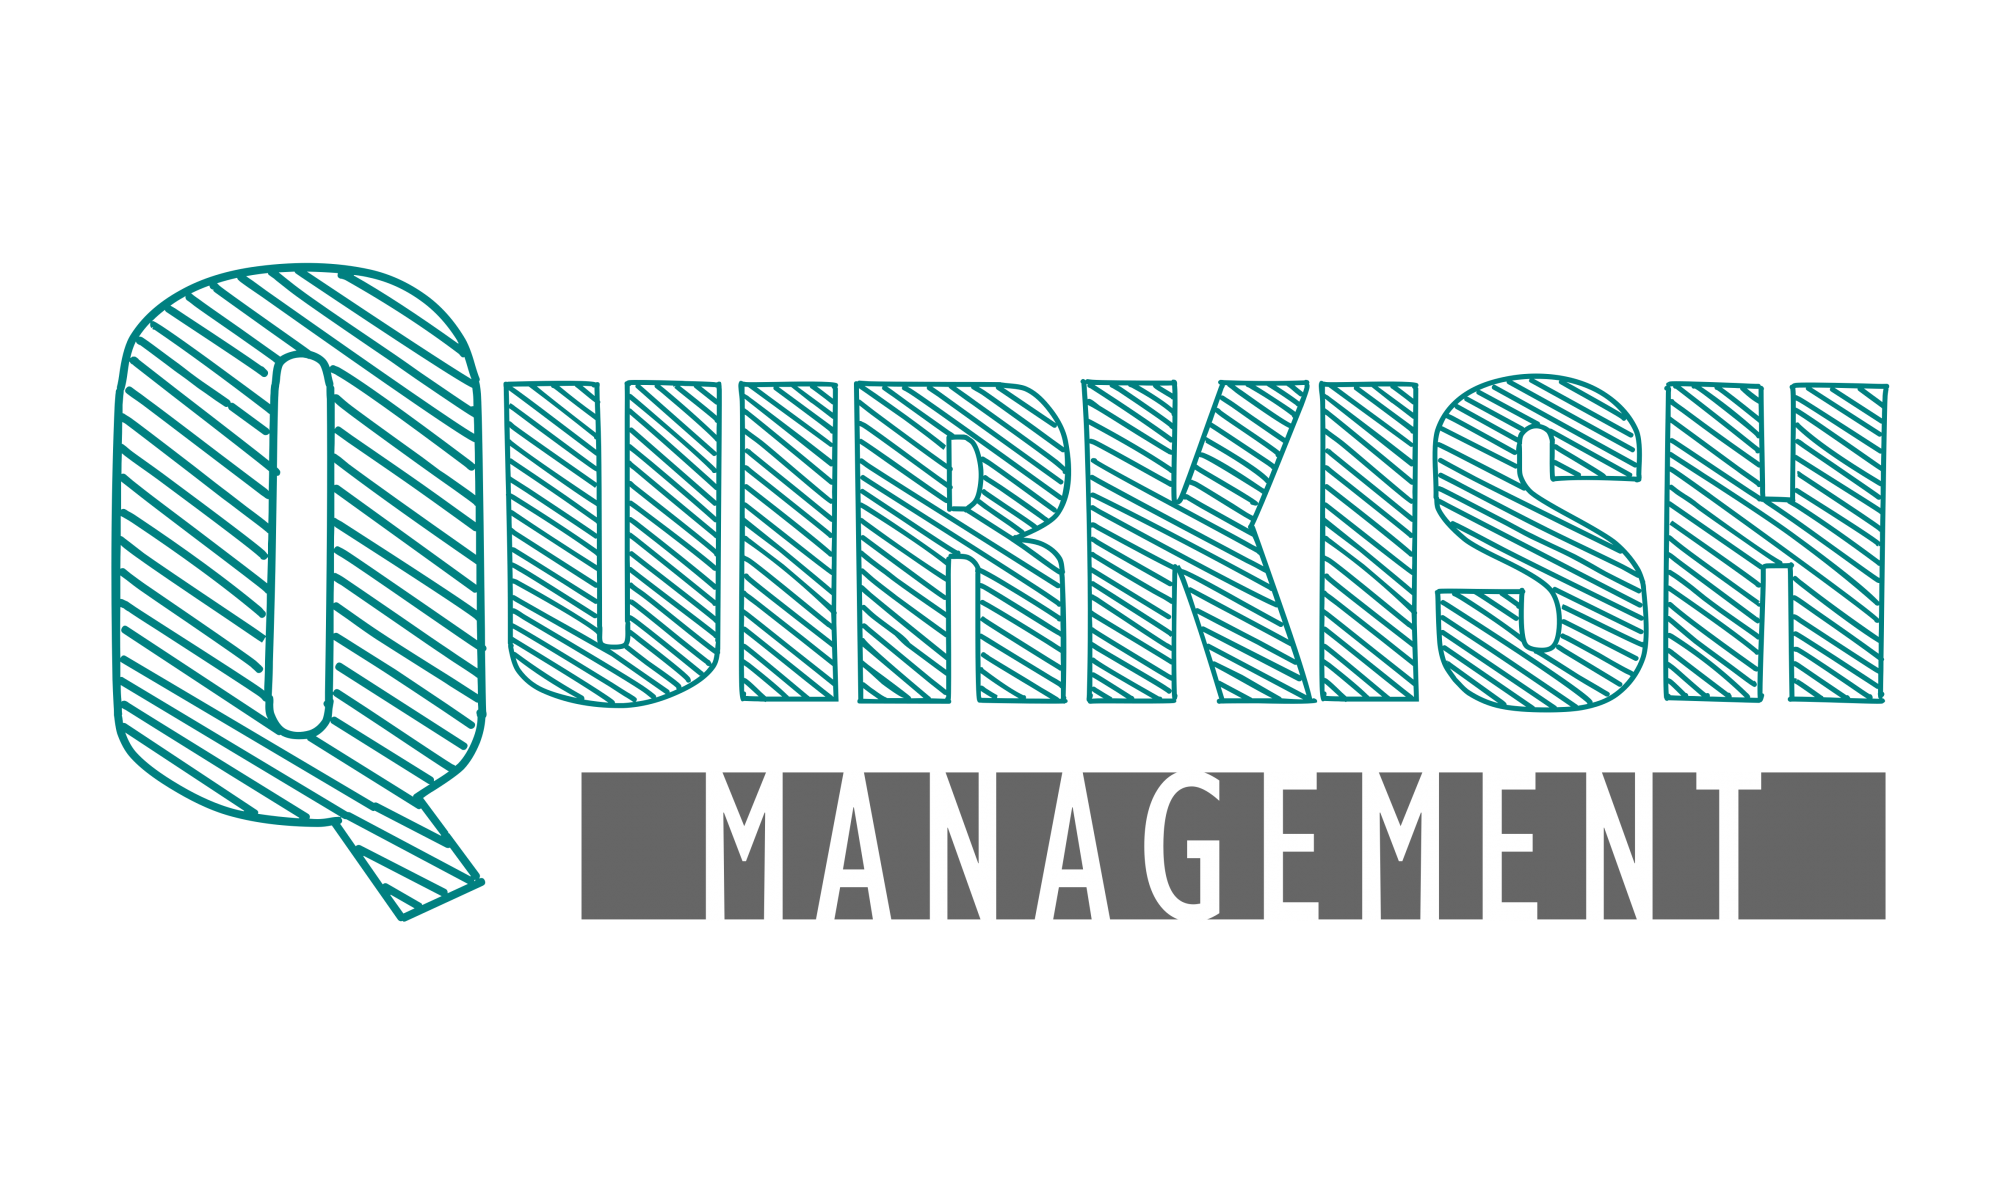 Quirkish management